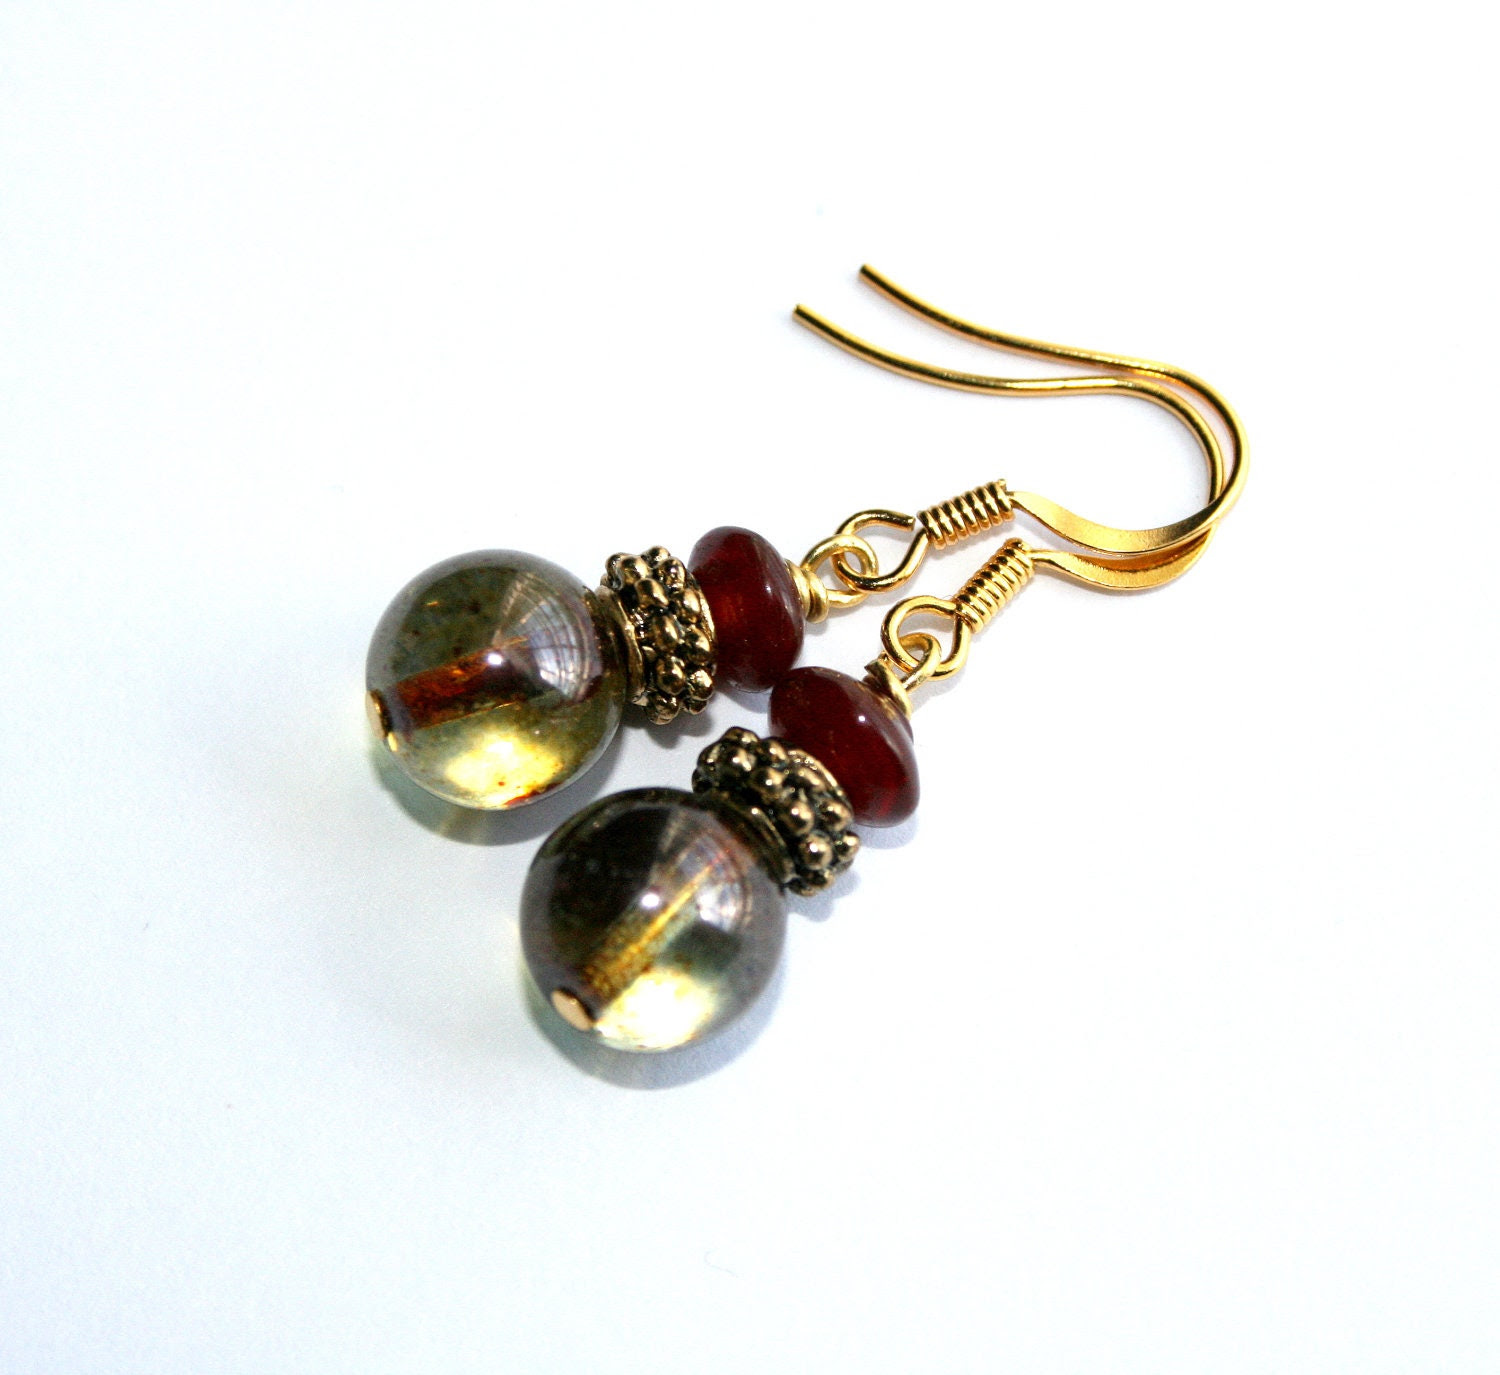 Antiqued Earrings, Glass, Gold, Maroon, Vintage Inspired